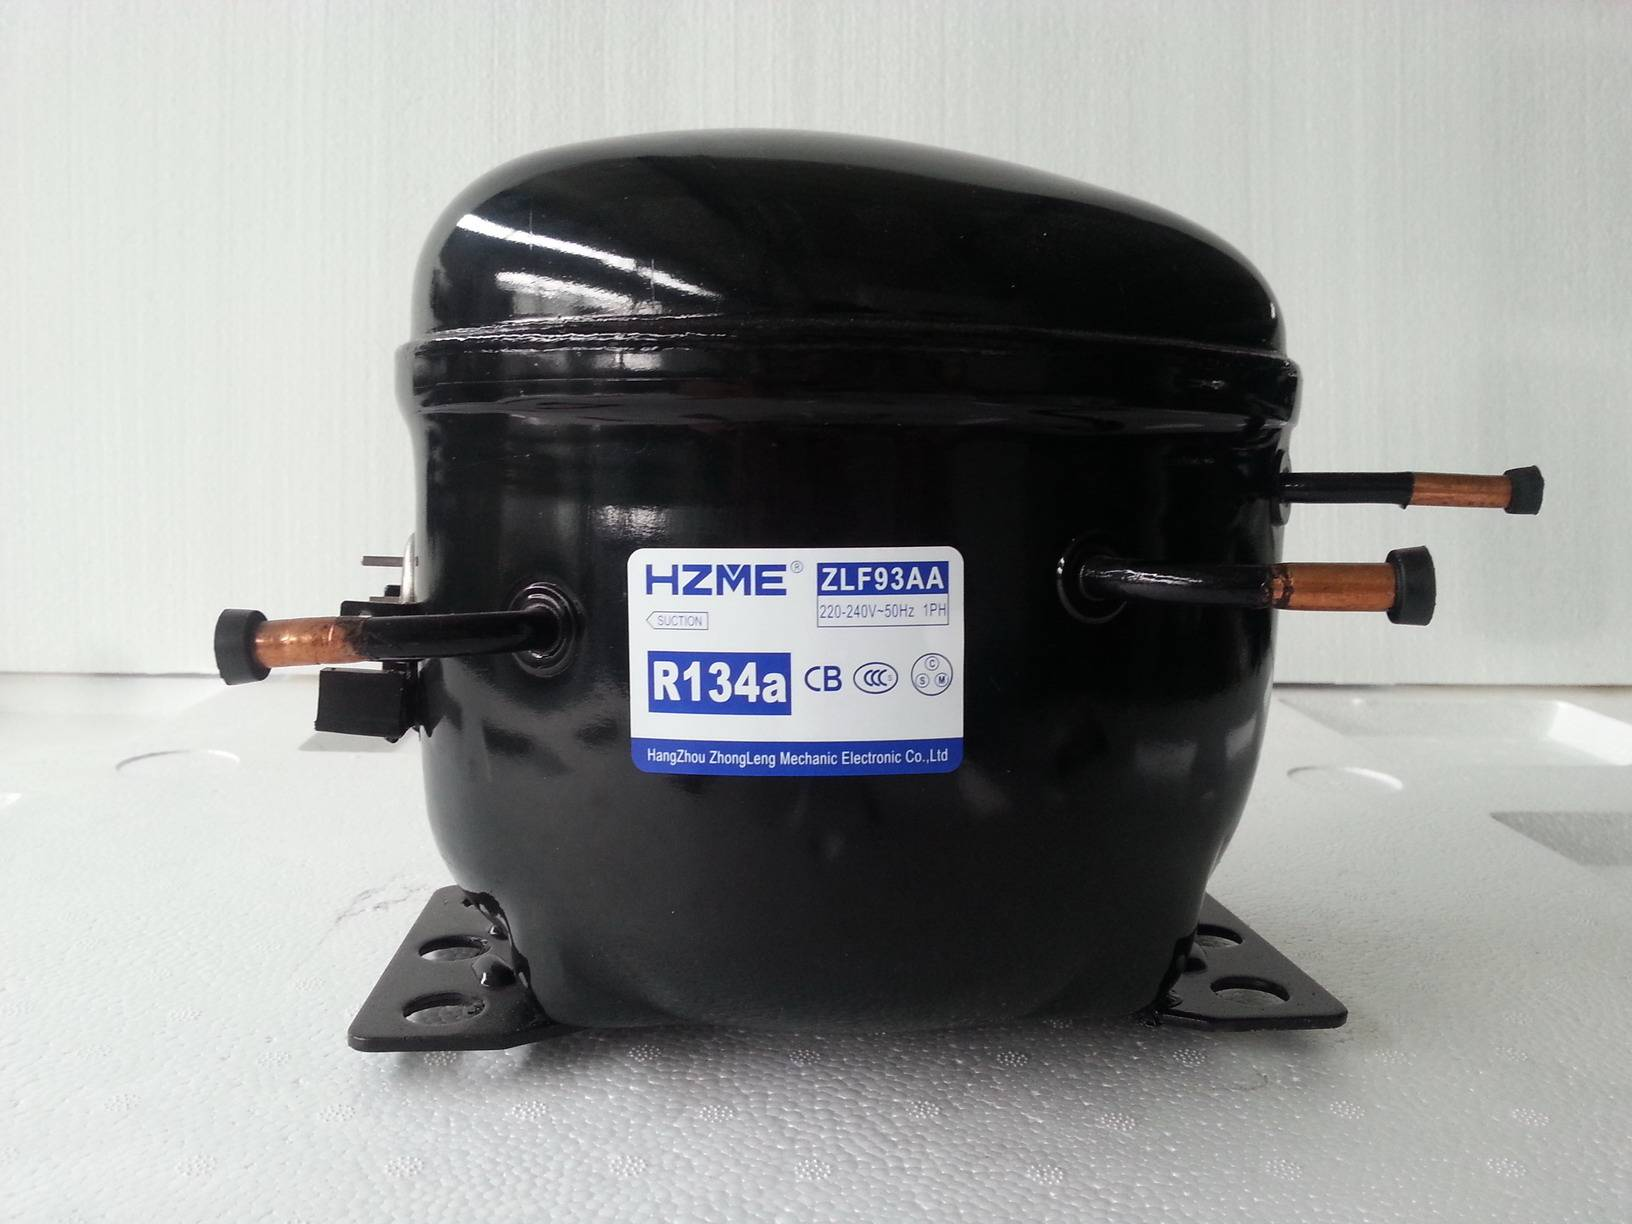 HERMETIC COMPRESSOR R134a LBP 1/4HP 9.3cc FOR COMMERCIAL REFRIGERATOR